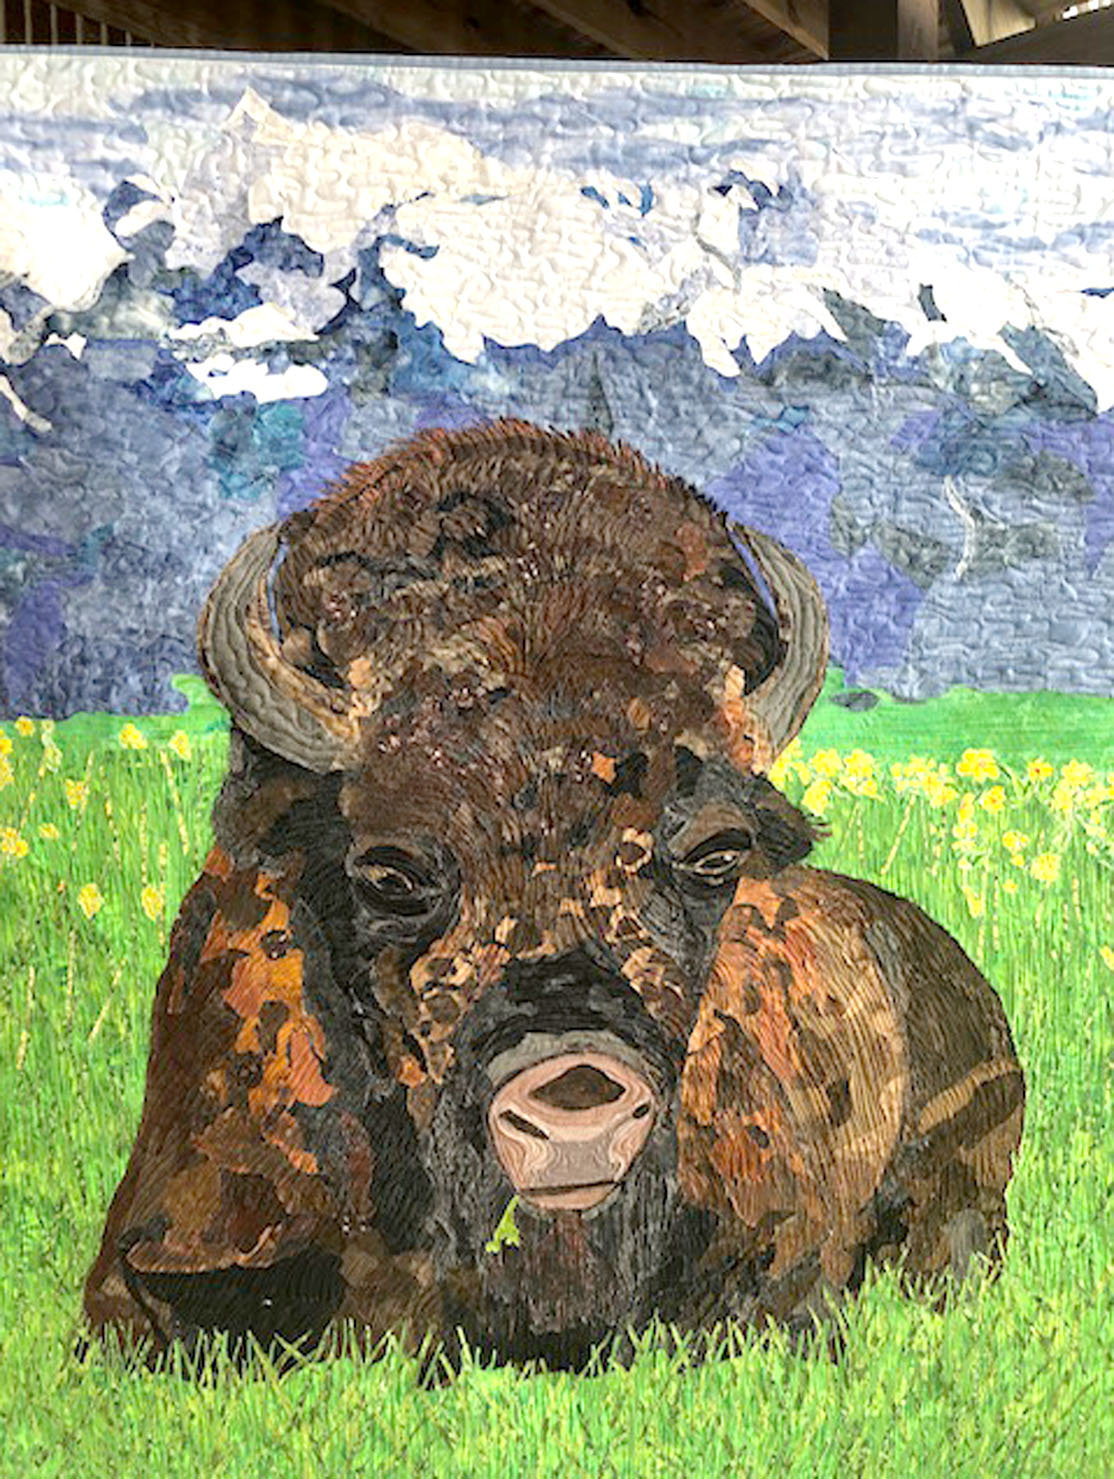 """BIG BISON"" a 45-inch quilt sewn by Sandra Presley, of Charleston, is on display. The quilt will be shown at the American Quilter's Society QuiltWeek show in Paducah, Ky. from Sept. 11-14."